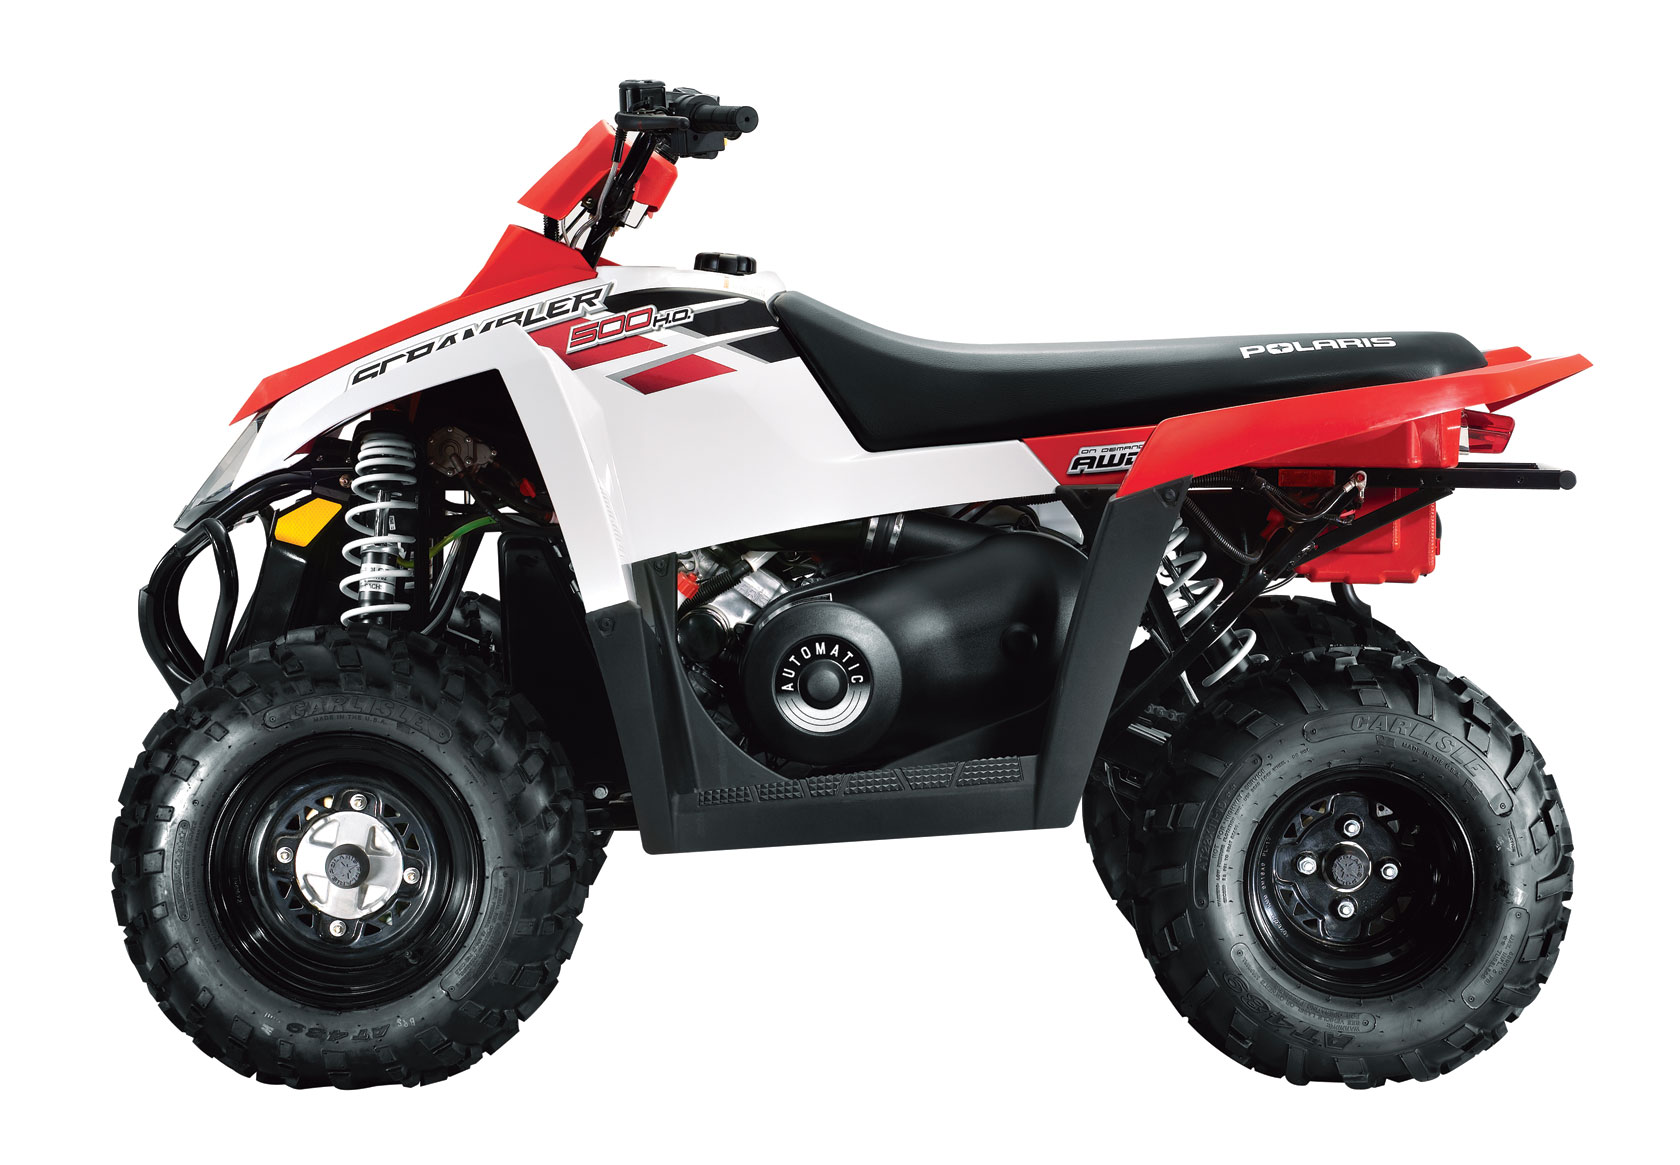 Polaris Scrambler 500 2008 images #121289